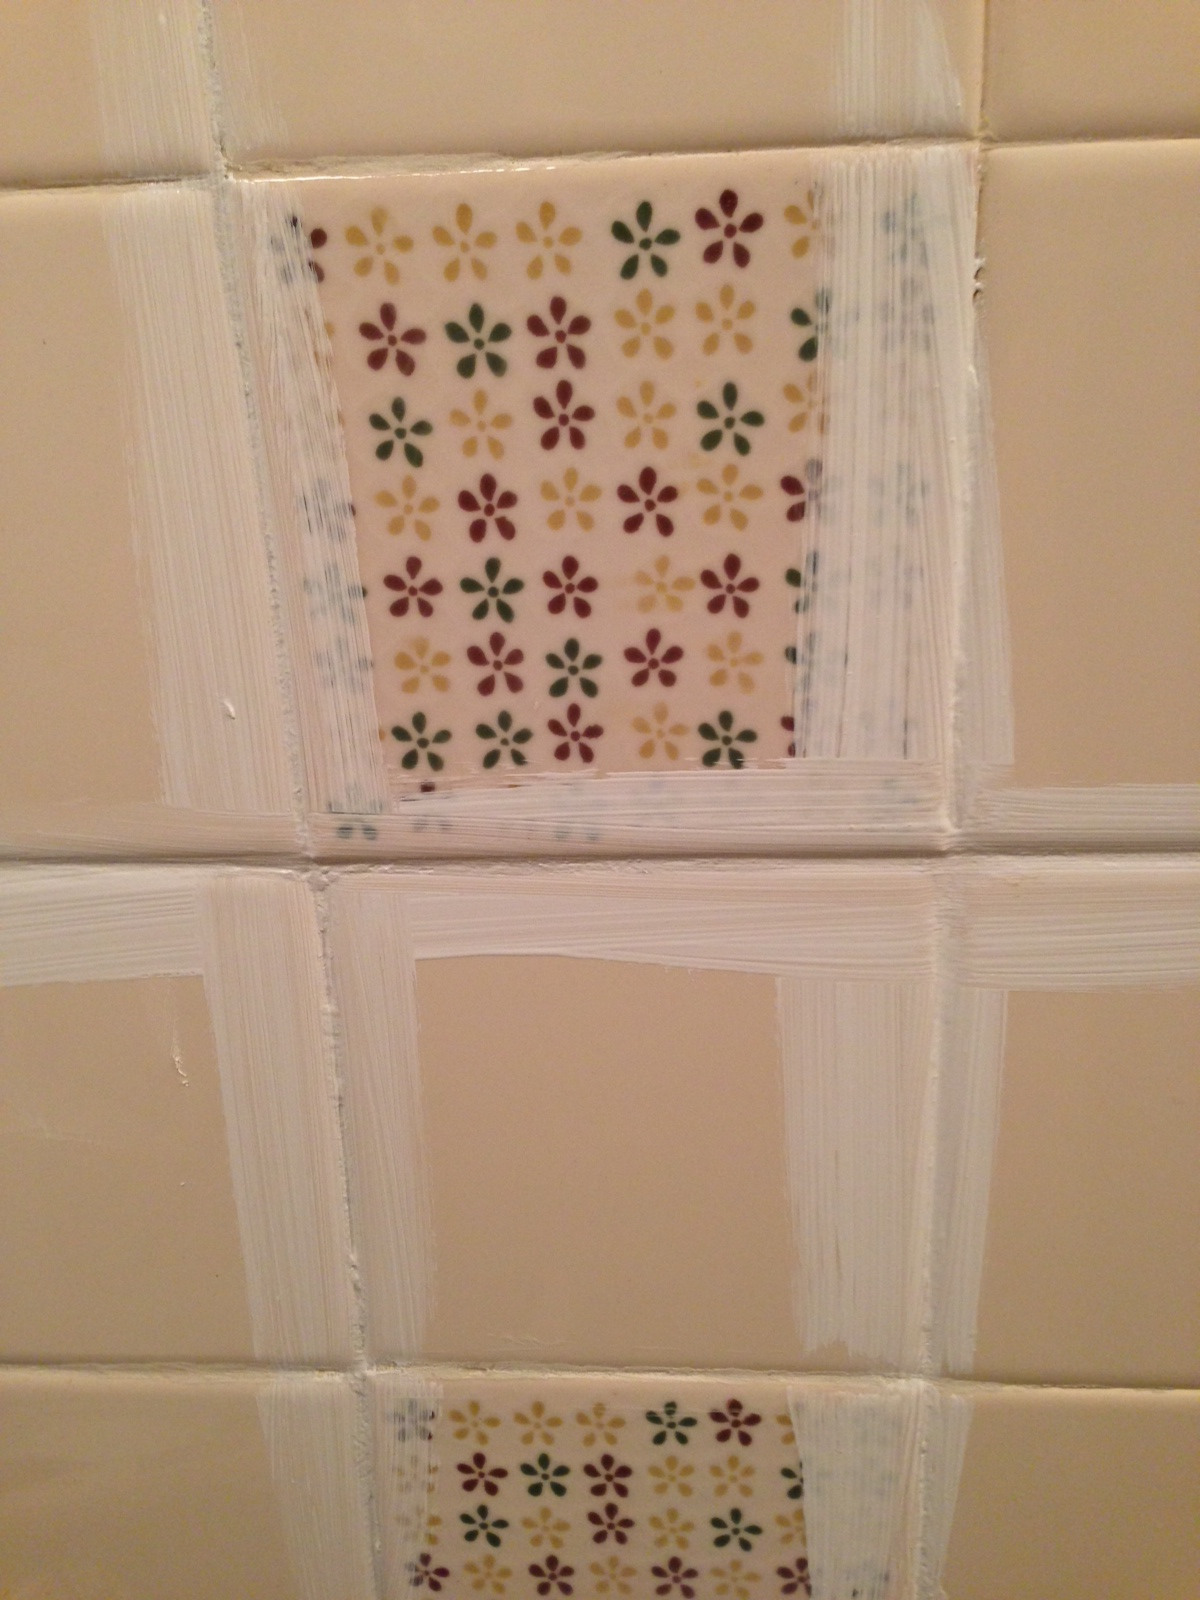 Painted tiles in bathroom - How To Paint Tile By The Learner Observer On Remodelaholic Com